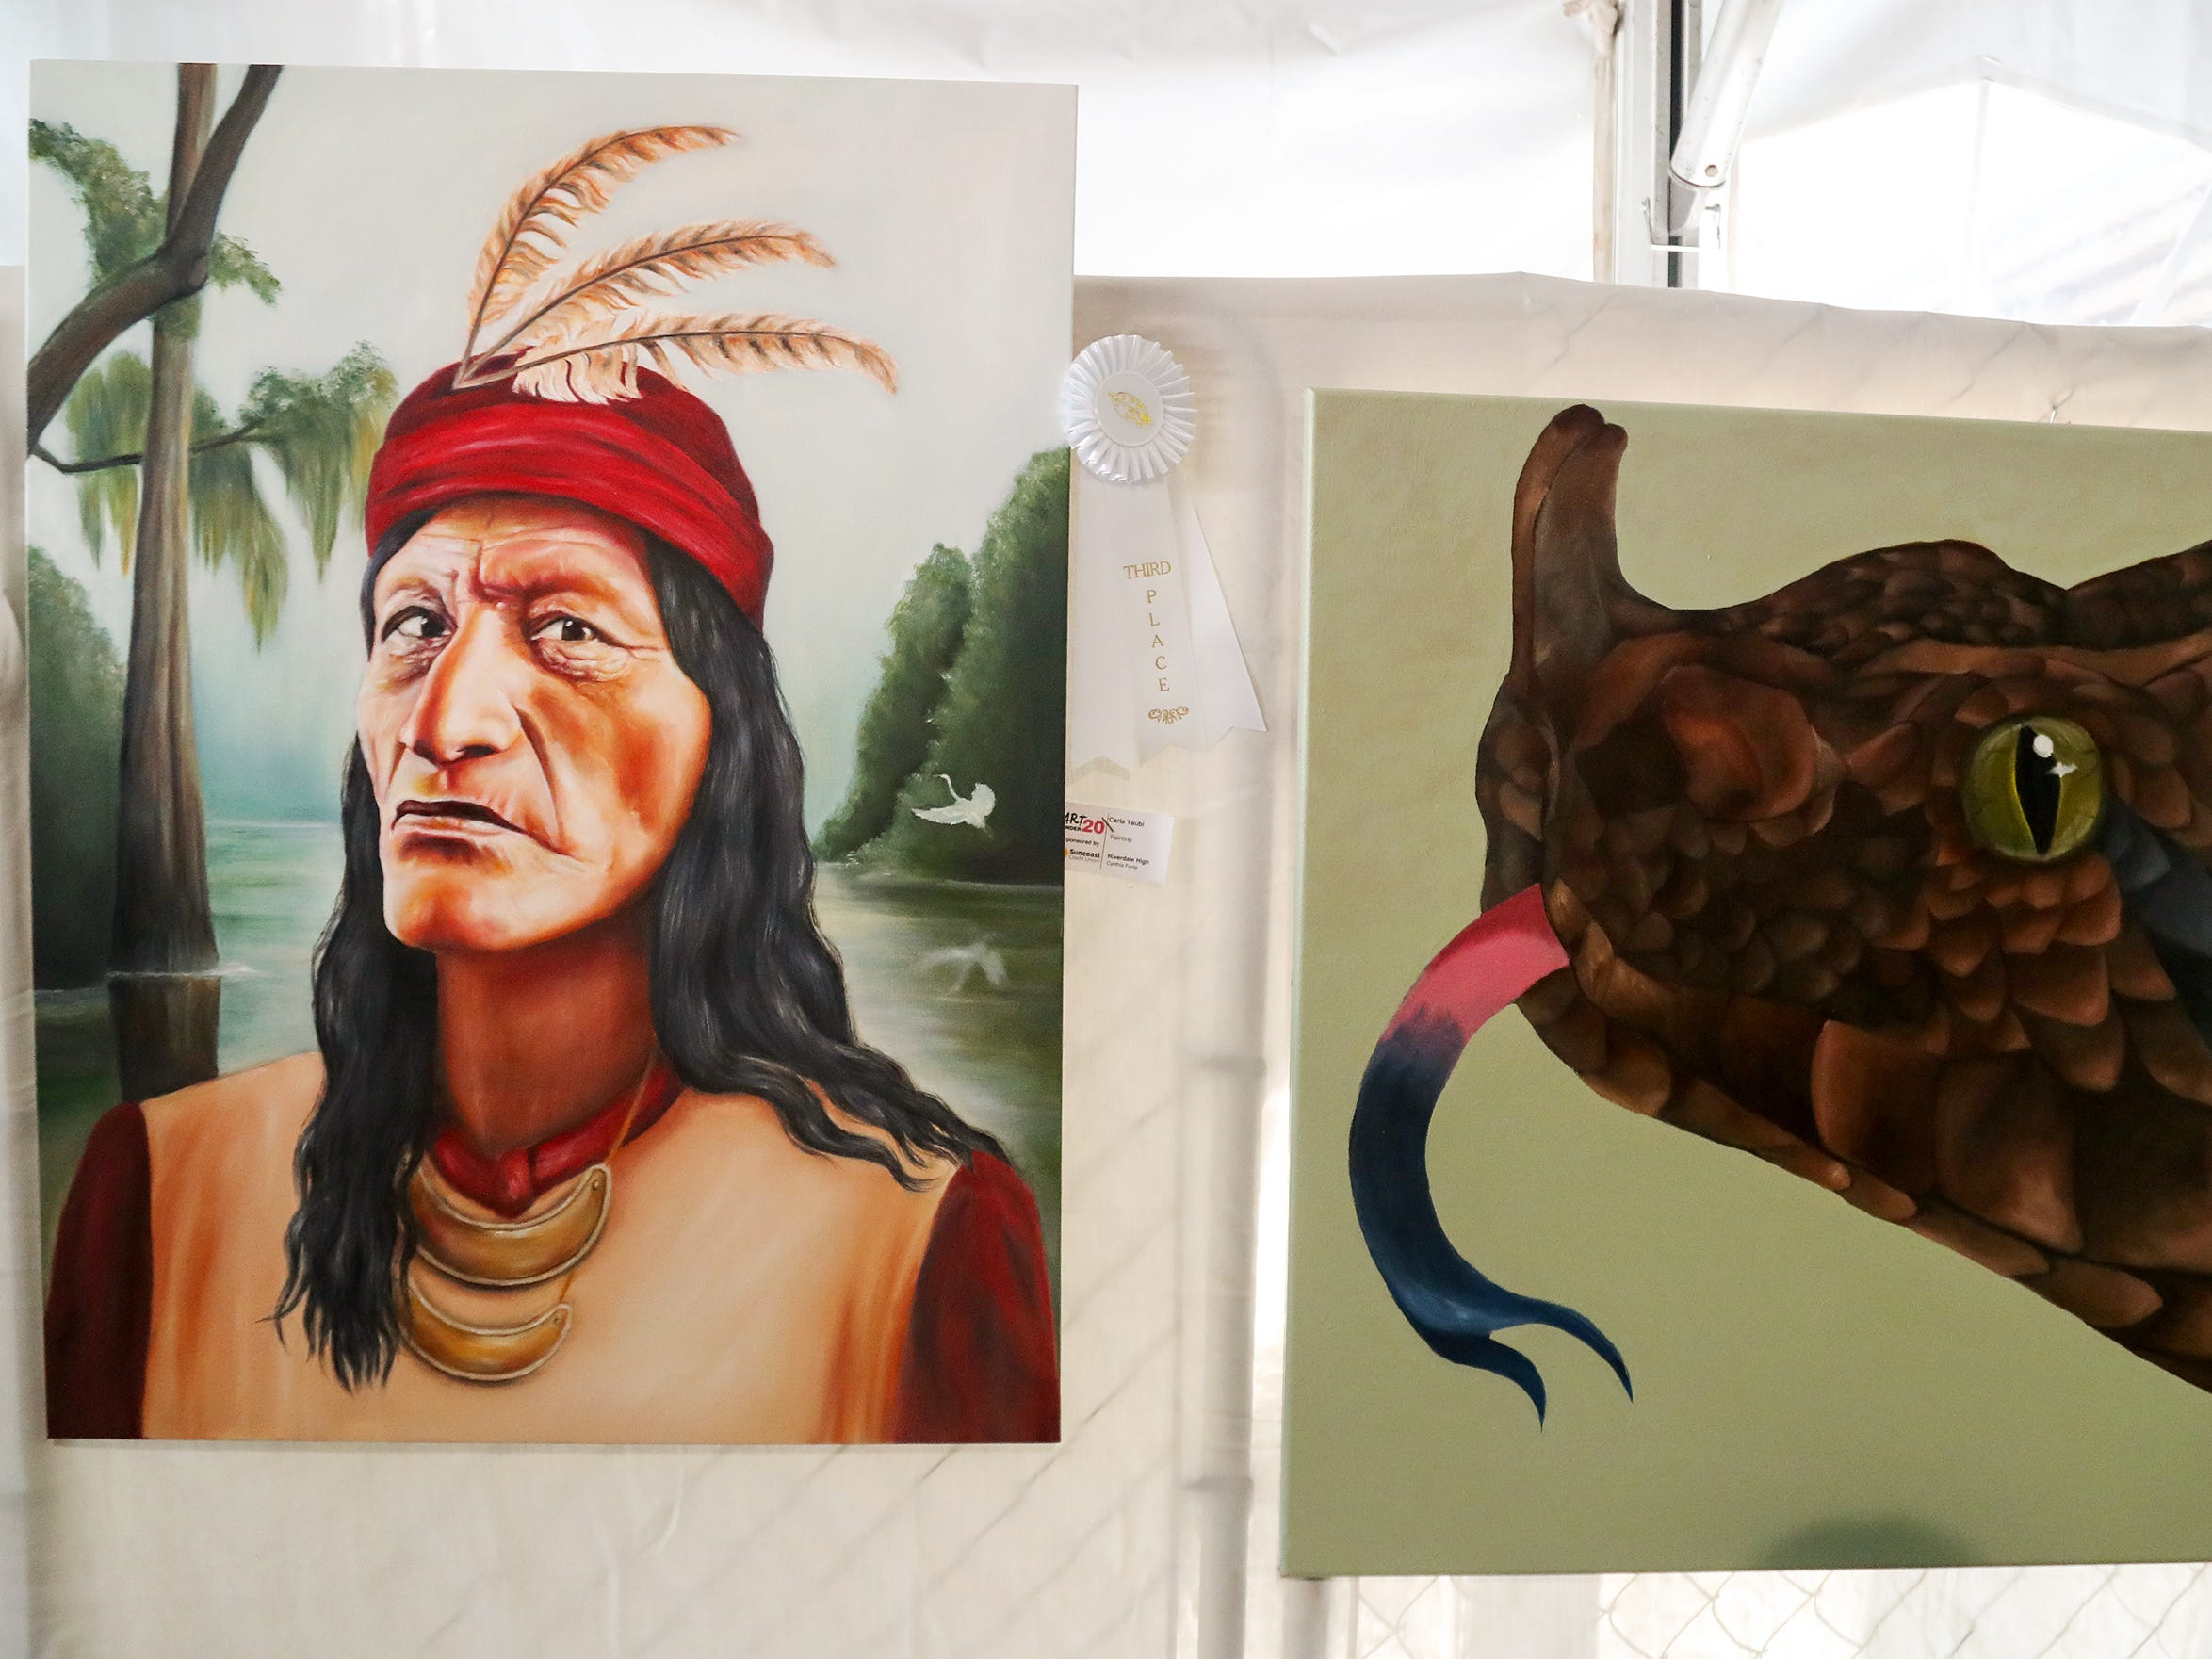 Paintings by Lee County school students were featured at ArtFest Fort Myers on Sunday in downtown Fort Myers. The annual event featured works by local and national artists.